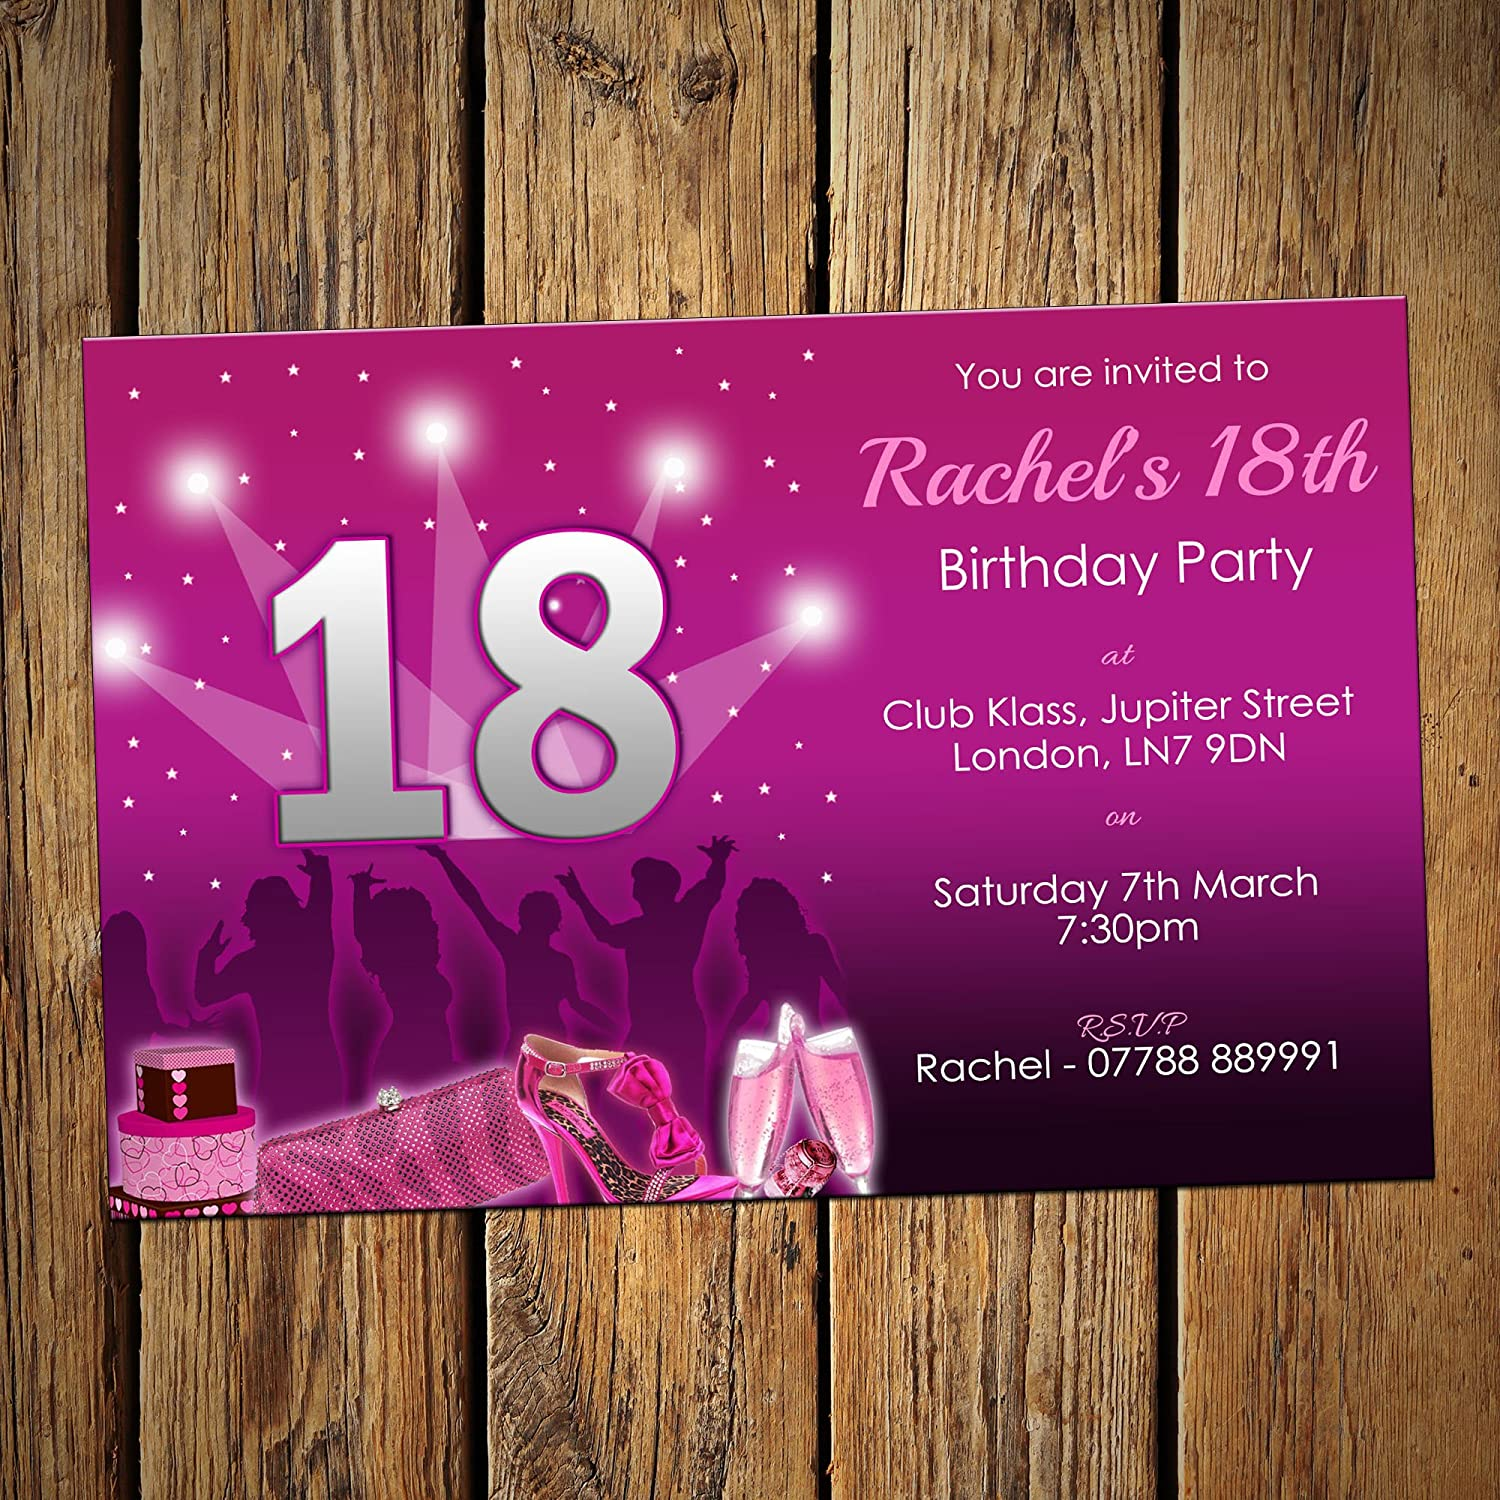 18th Birthday Party Invites Night Out Girls Pack of 24 Amazon – Invitation for 18th Birthday